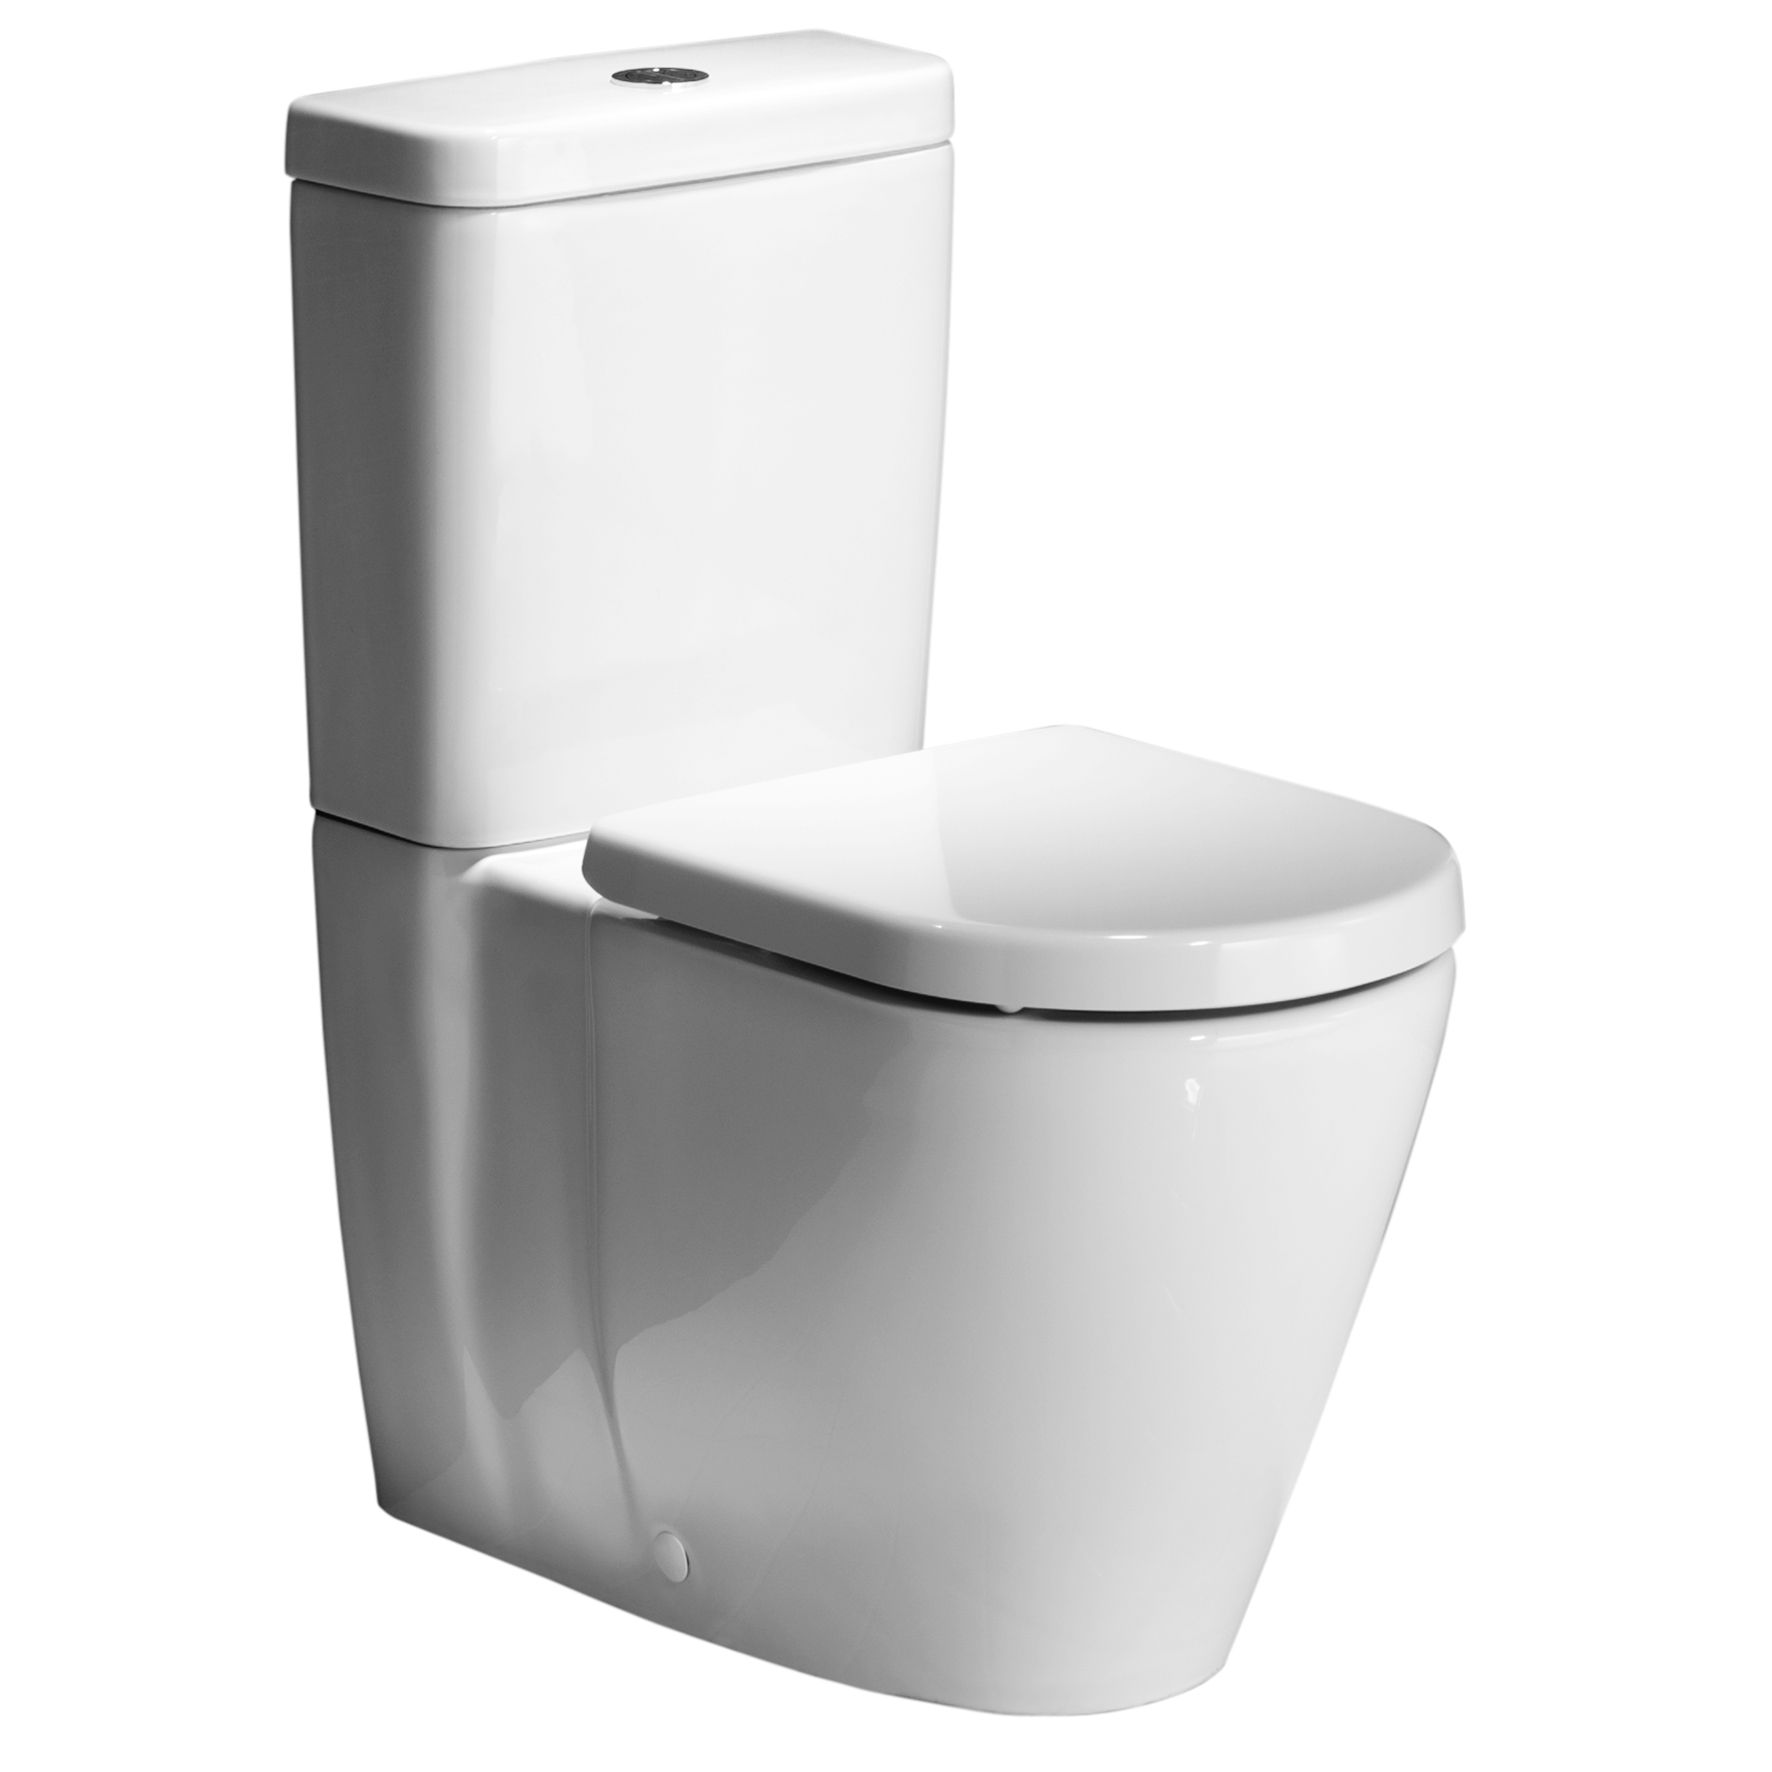 Seido Wall Faced Toilet Suite Bunnings Warehouse Bathroom - Bathroom renovators warehouse